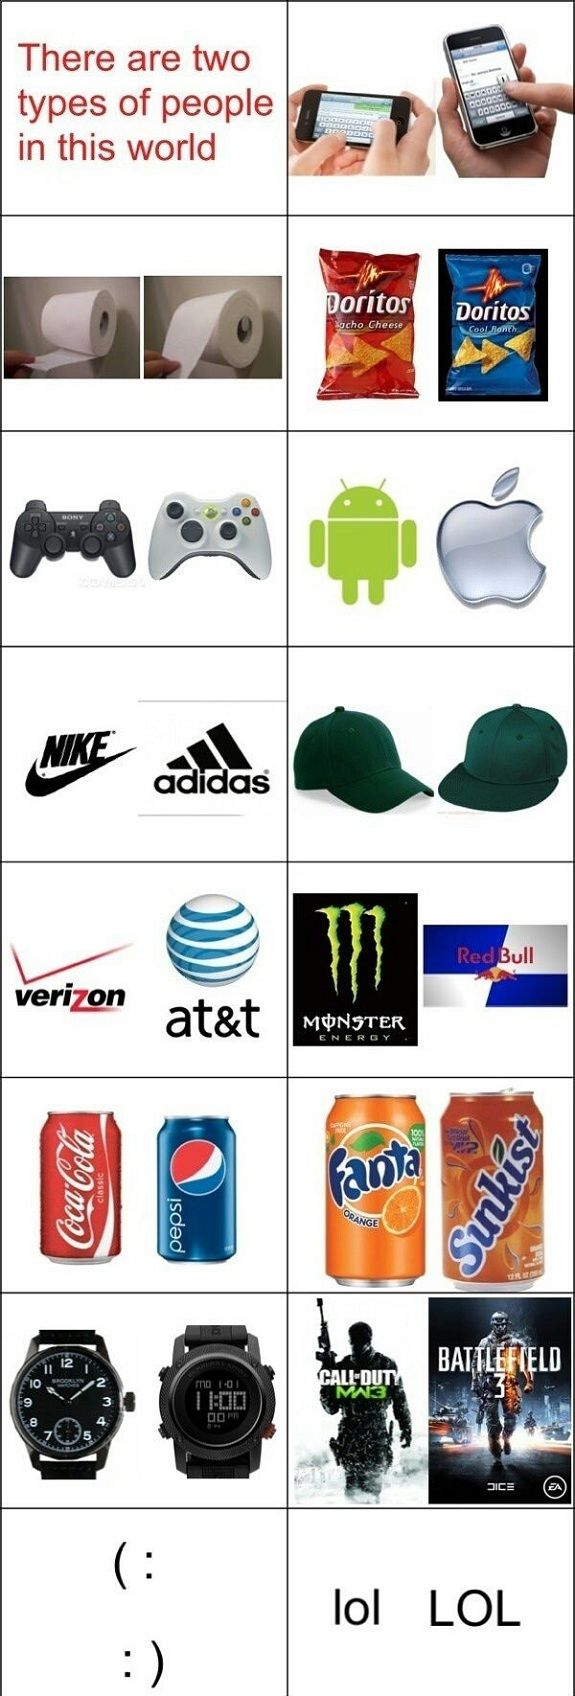 One thumb, top of toilet paper, cool ranch, xbox, Apple, Nike, flat cap, AT&T, red bull, cocacola, fanta, instant time watch, MW3, :) , ooooh I think I'm both on the lol/LOL, it depends on the situation.